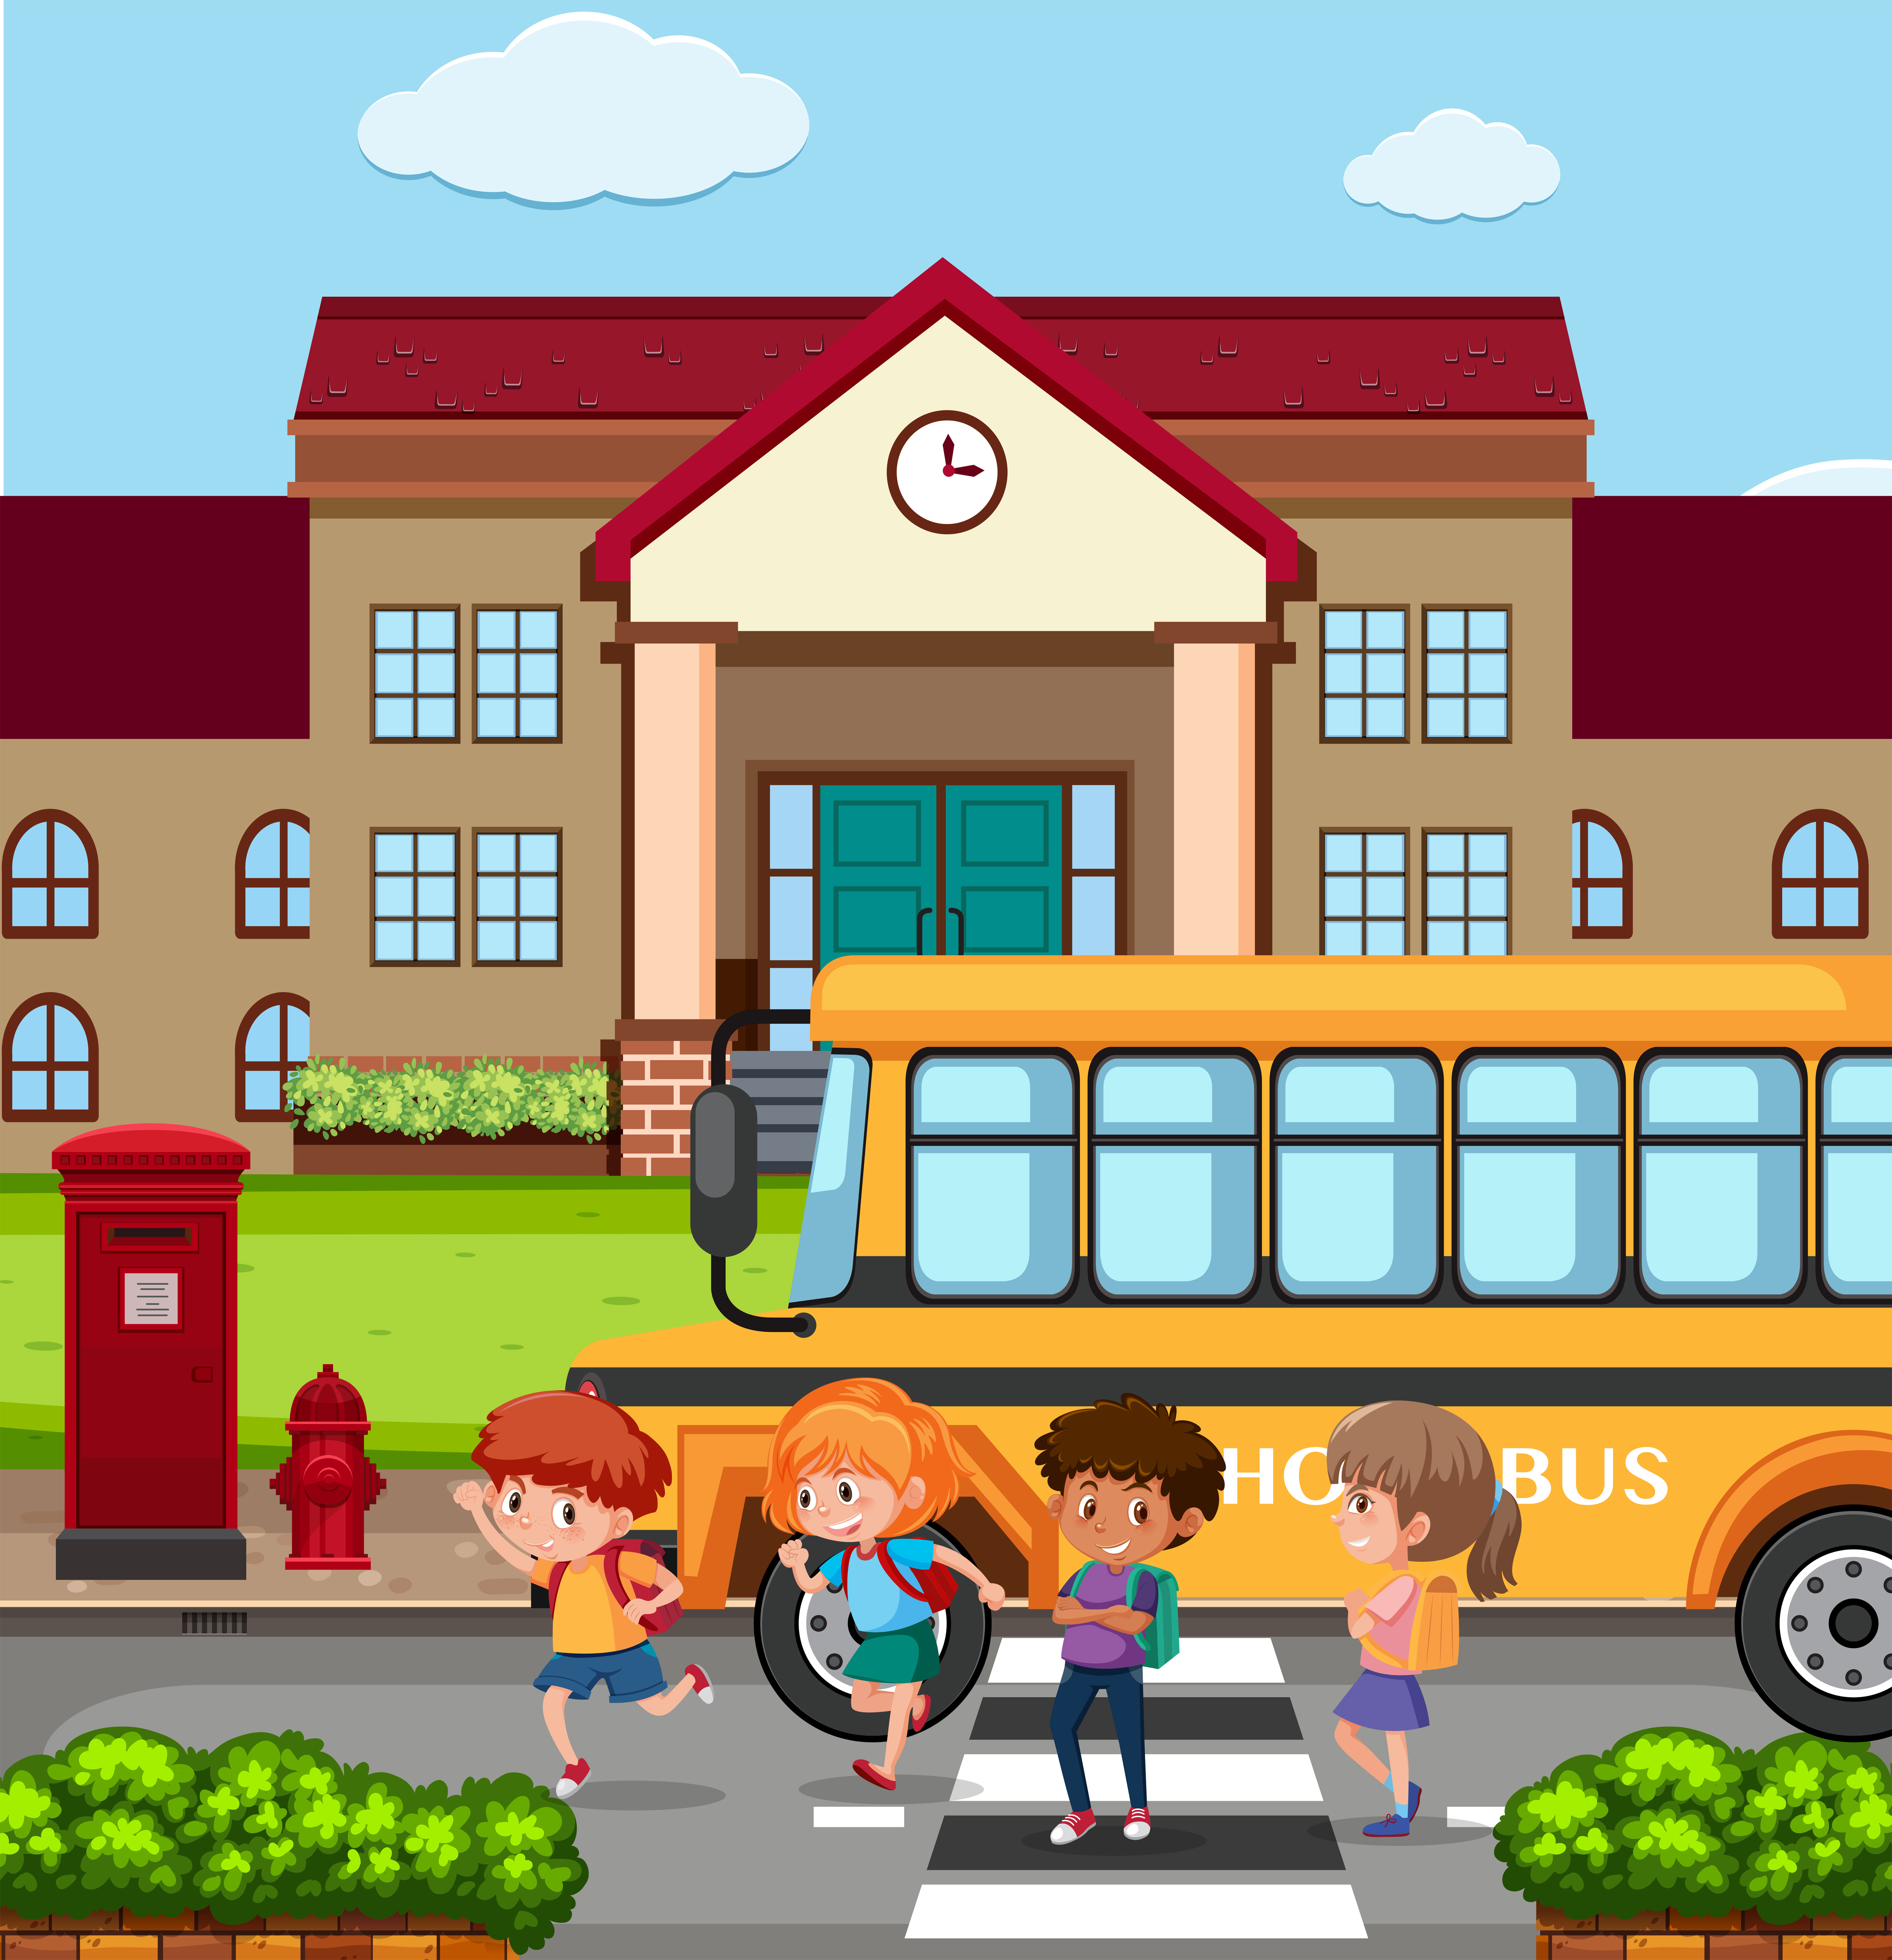 Kids outside a school - Download Free Vectors, Clipart ...